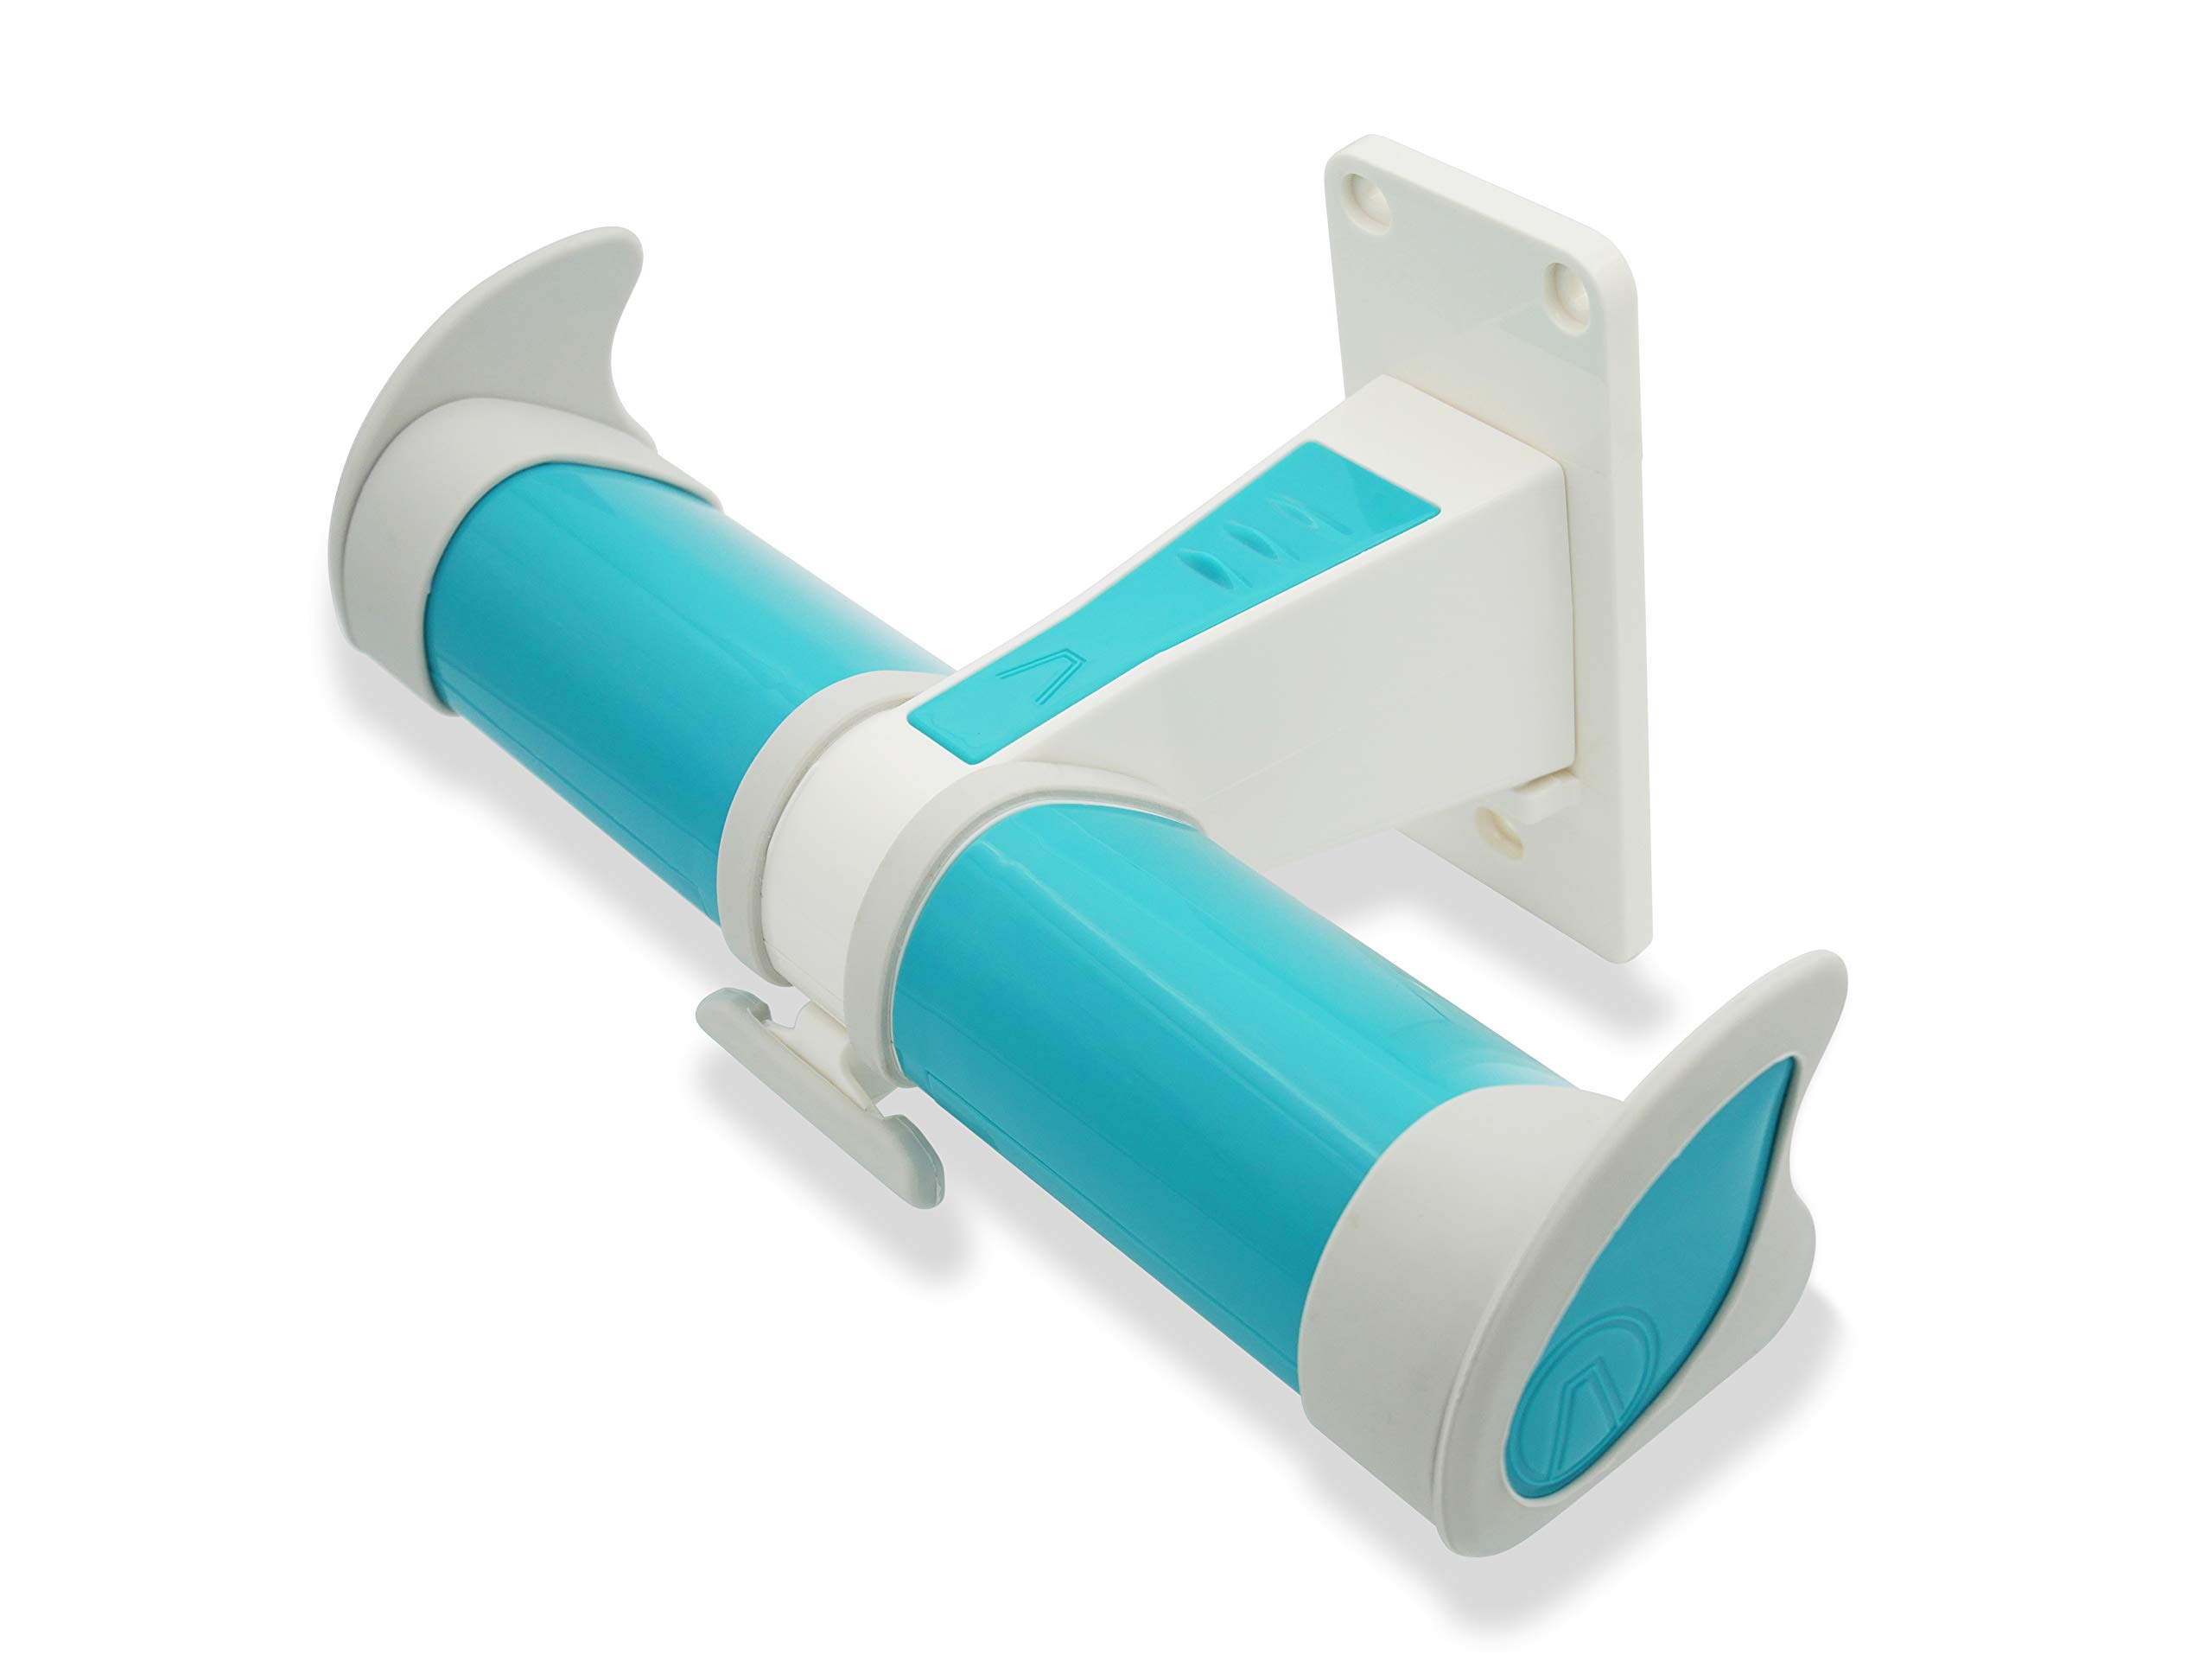 AIR Surf Rack - Surfboard Wall Rack Hanger - Vertical Stylish Minimalist Floating Display (Aqua Blue) by AFRAME